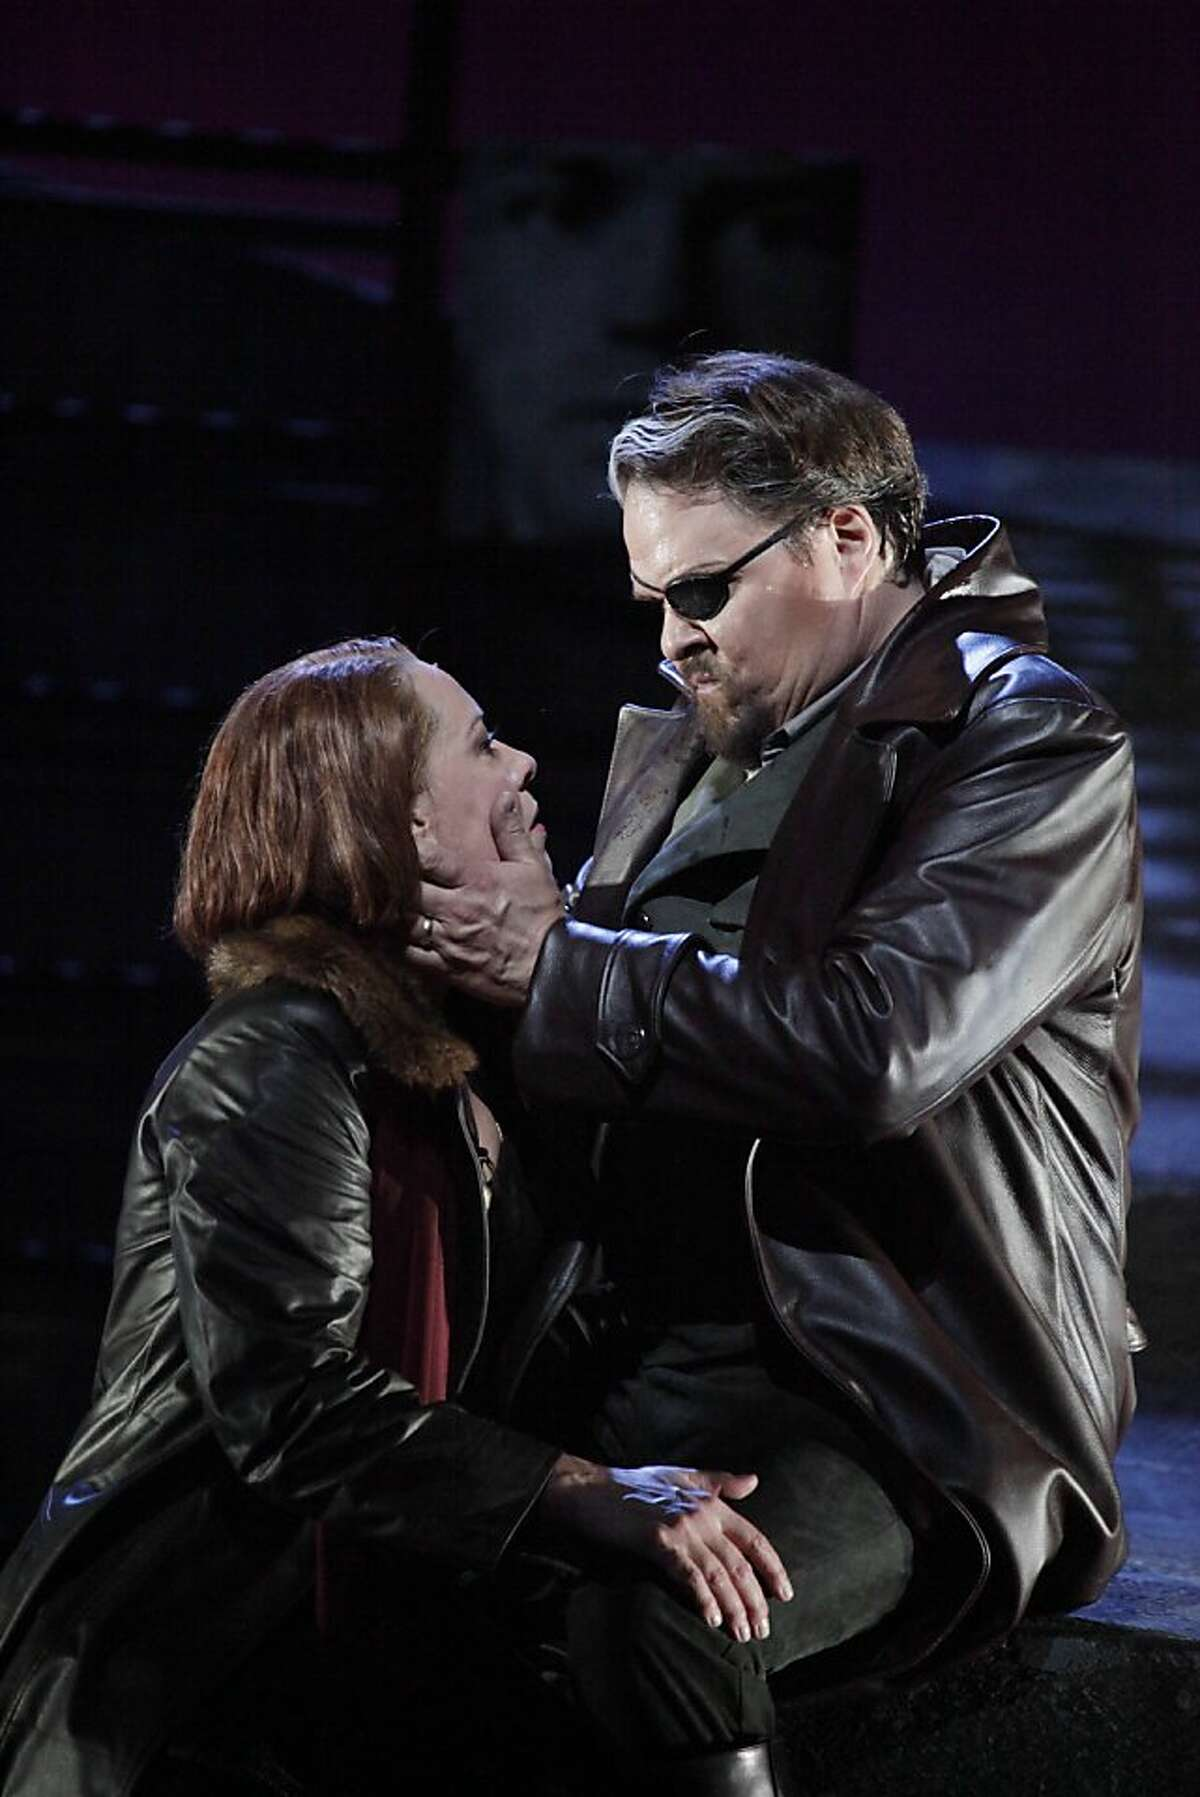 Nina Stemme as Brunnhilde (l to r) and Mark Delavan as Wotan are seen during a final dress rehearsal of Wagner's Die Walkure at the War Memorial Opera House in San Francisco, Calif. on Sunday June 6, 2010.